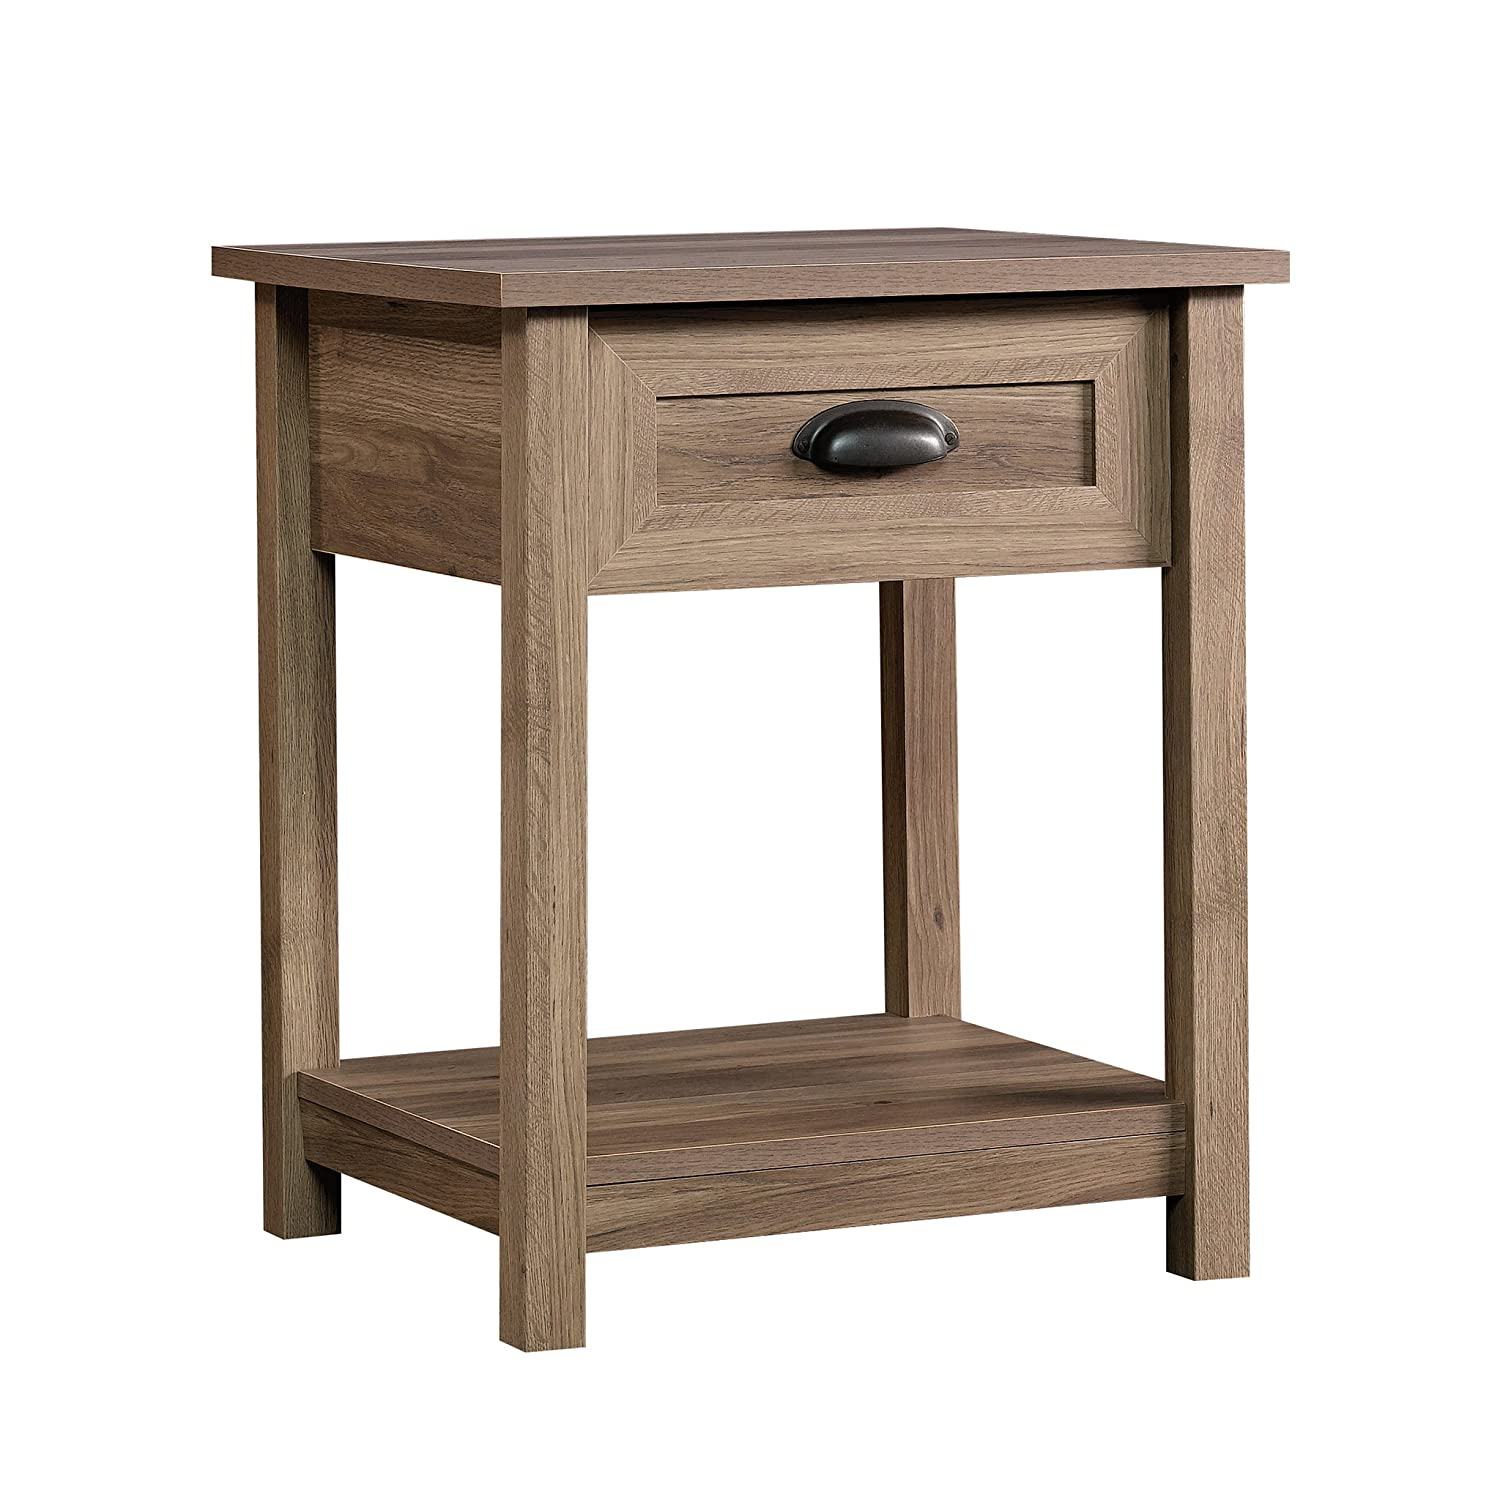 Sauder 417771 County Line Side Table/Night Stand, L: 19.84